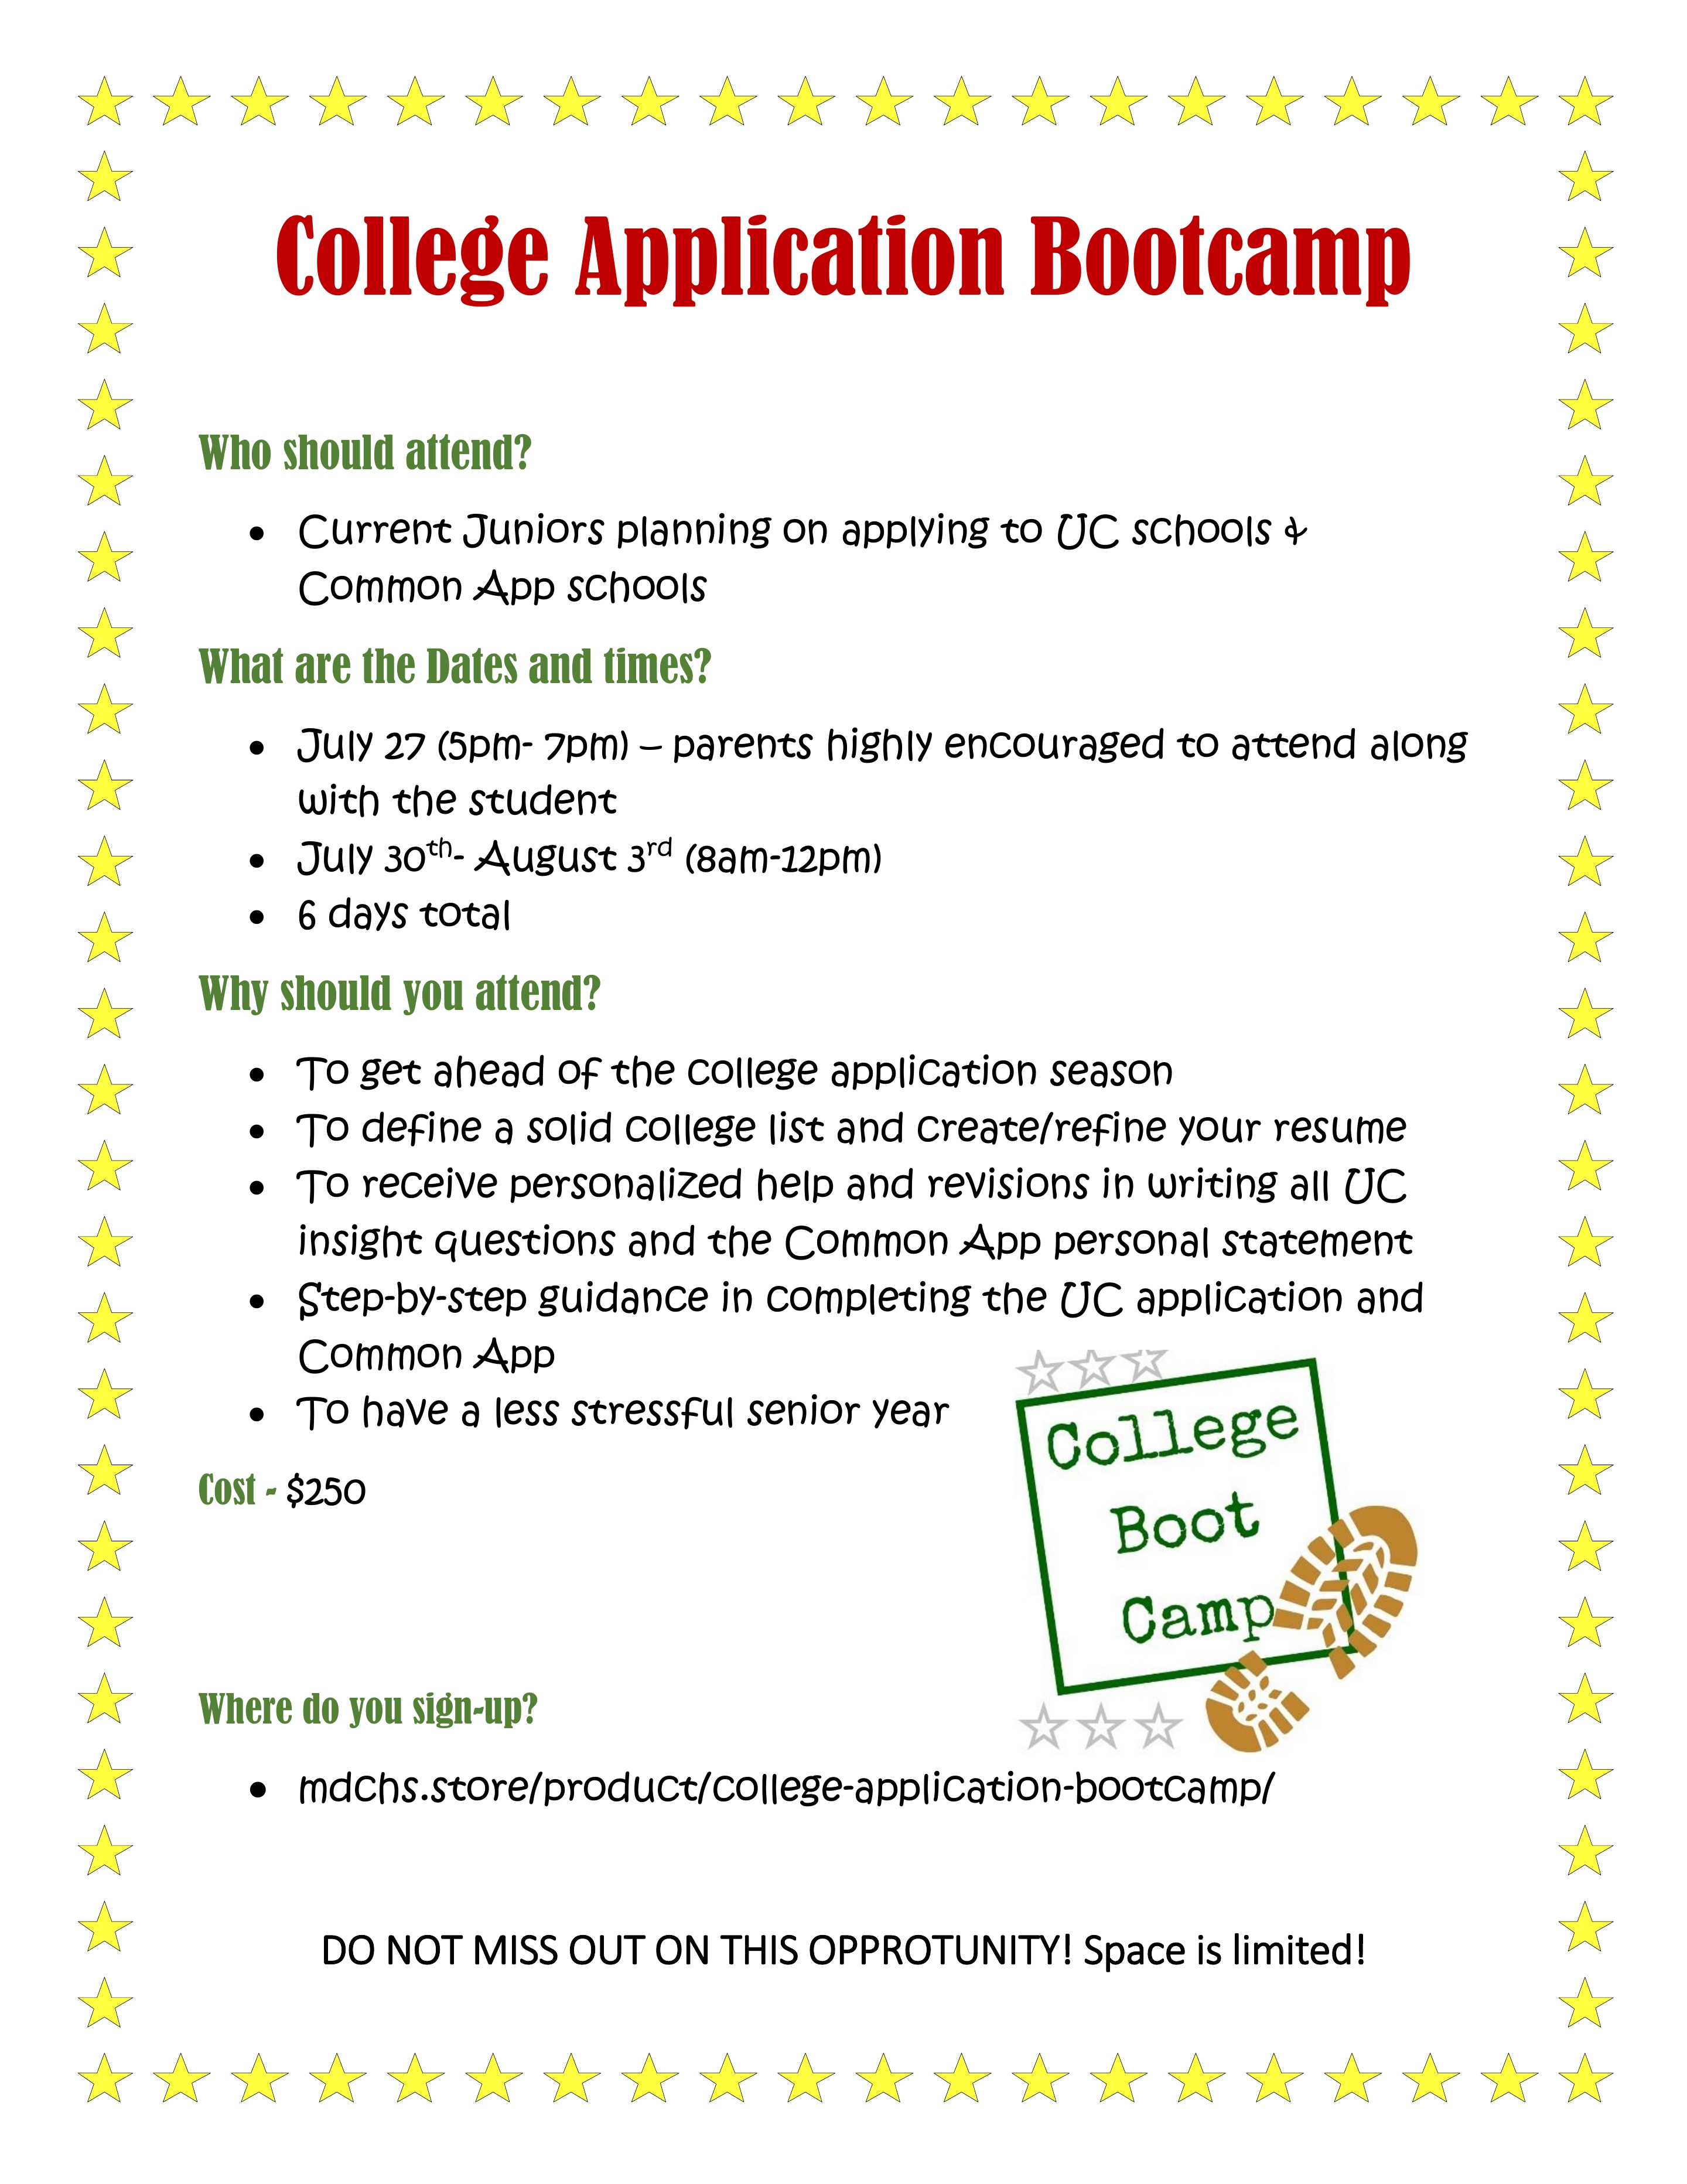 College Application Boot Camp – College Application Bootcamp – Mater ...